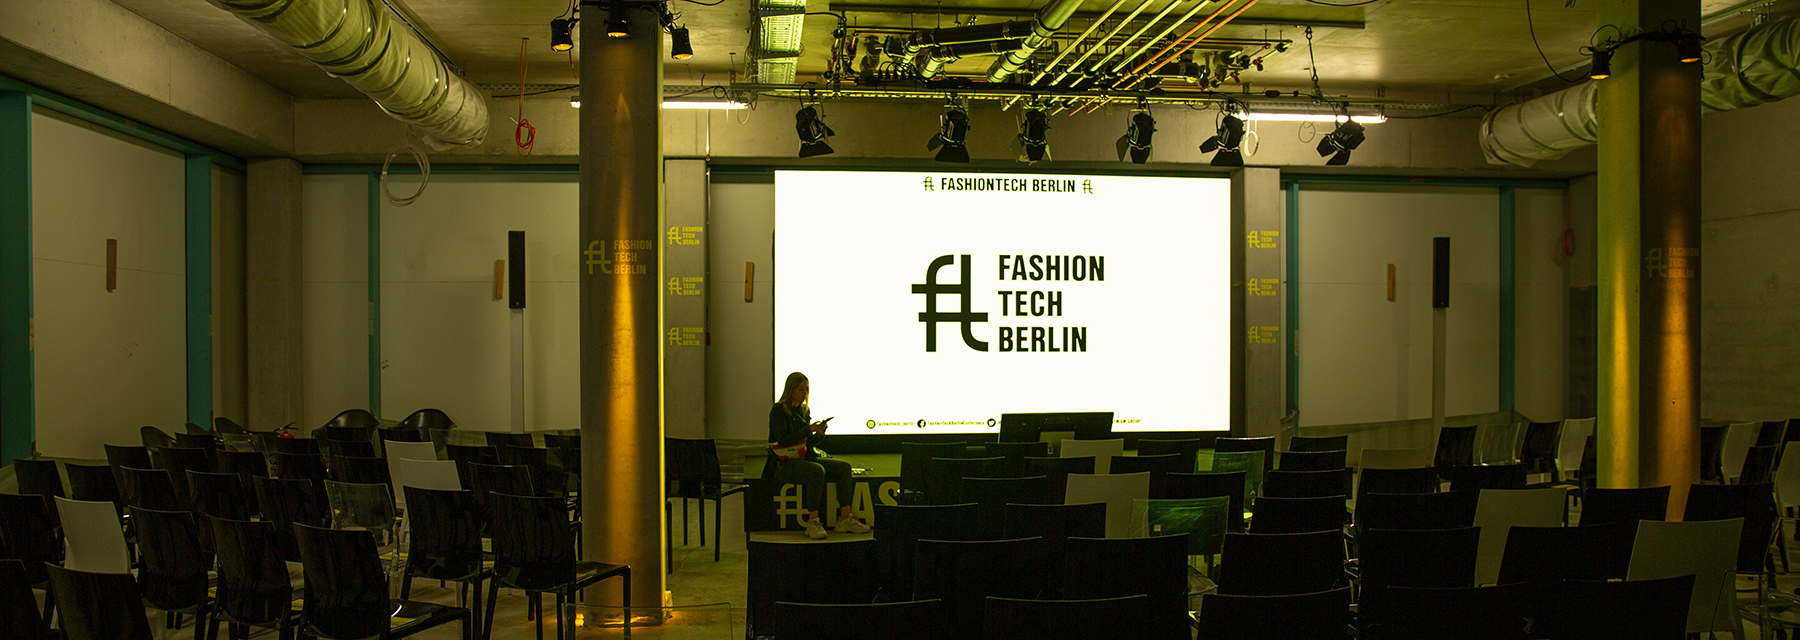 Fashiontech Berlin - Under Construction